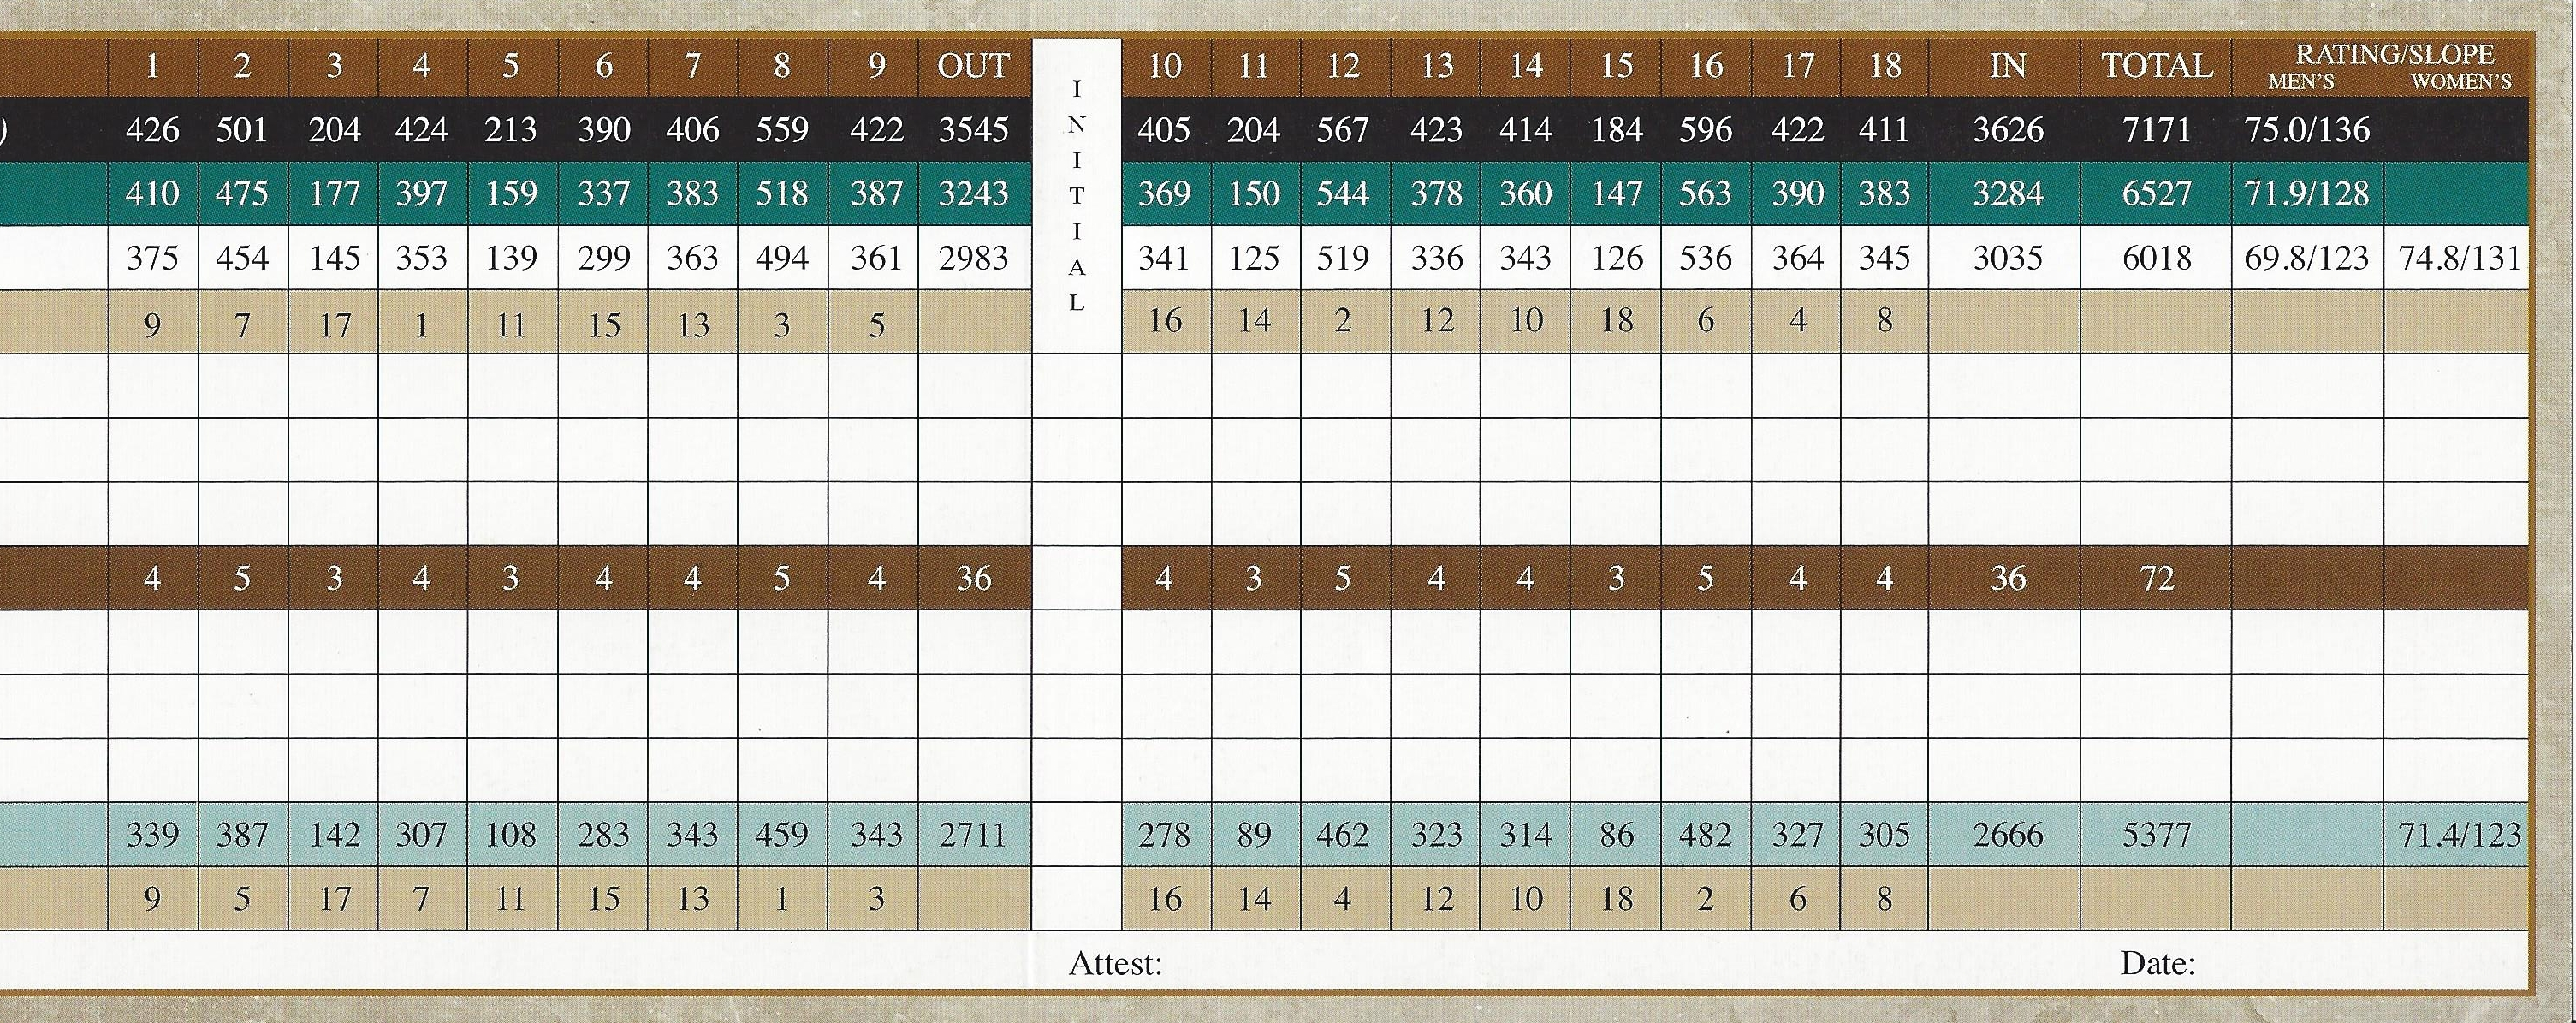 Score Card for The Flamingo Course at Lely Resort Back